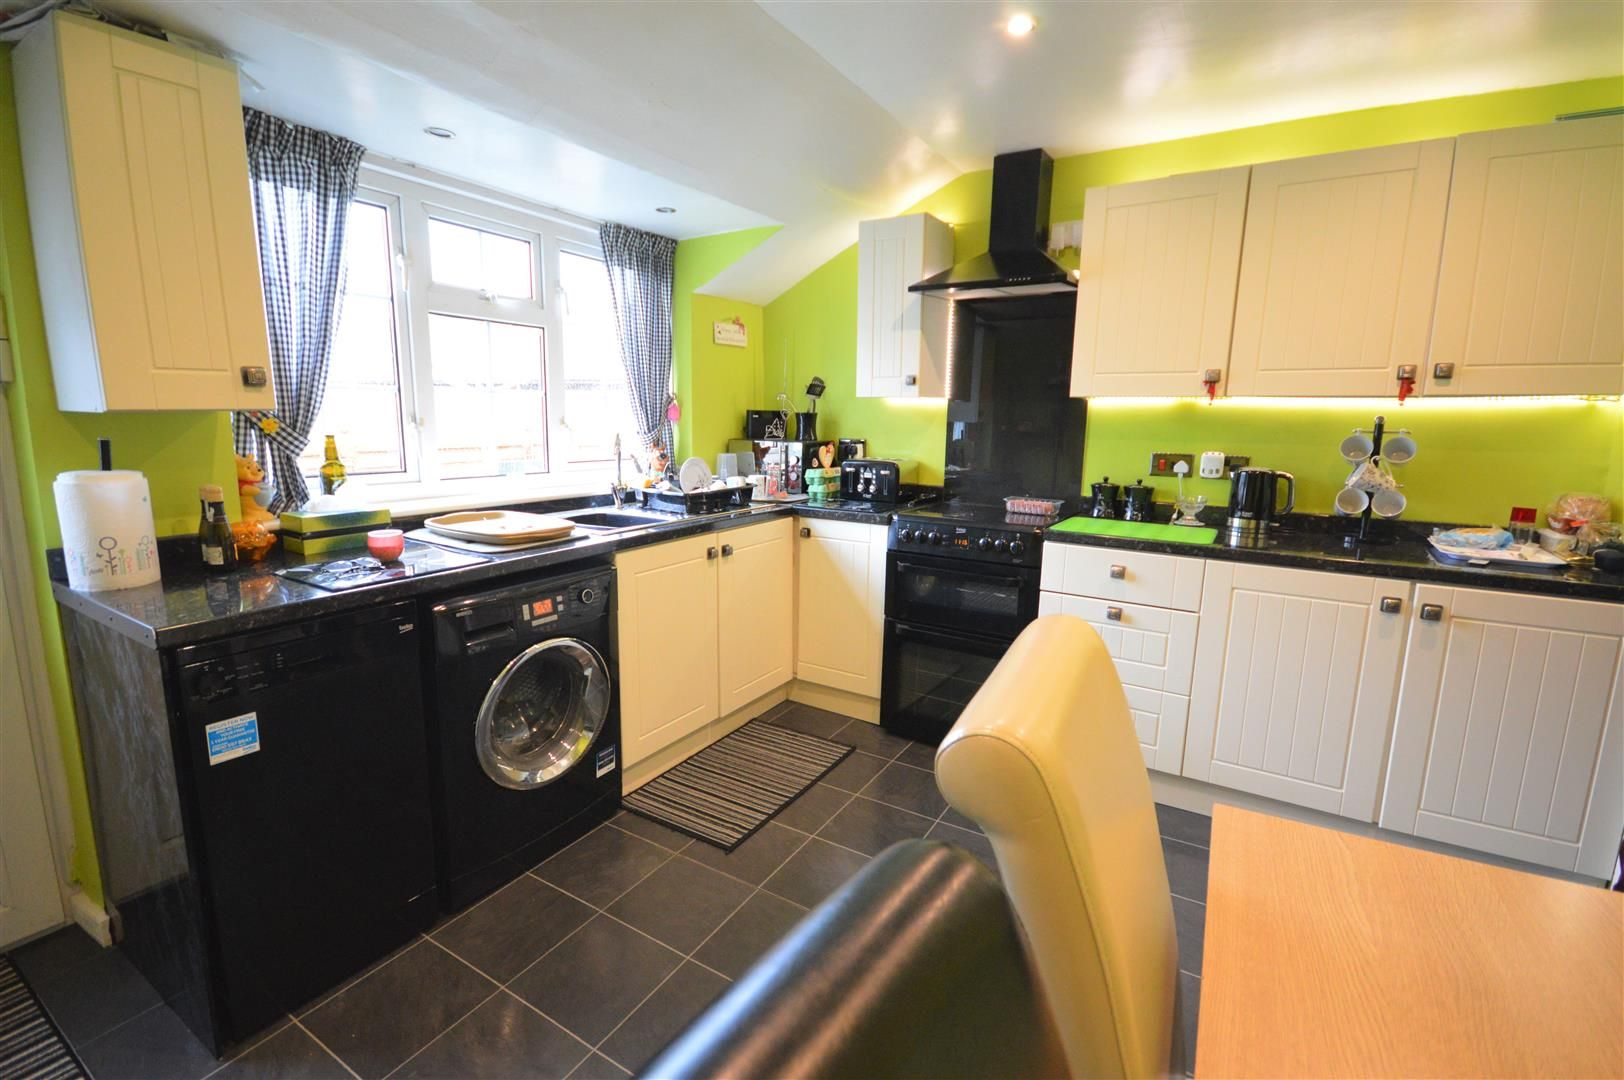 1 bed  for sale in Leominster  - Property Image 3